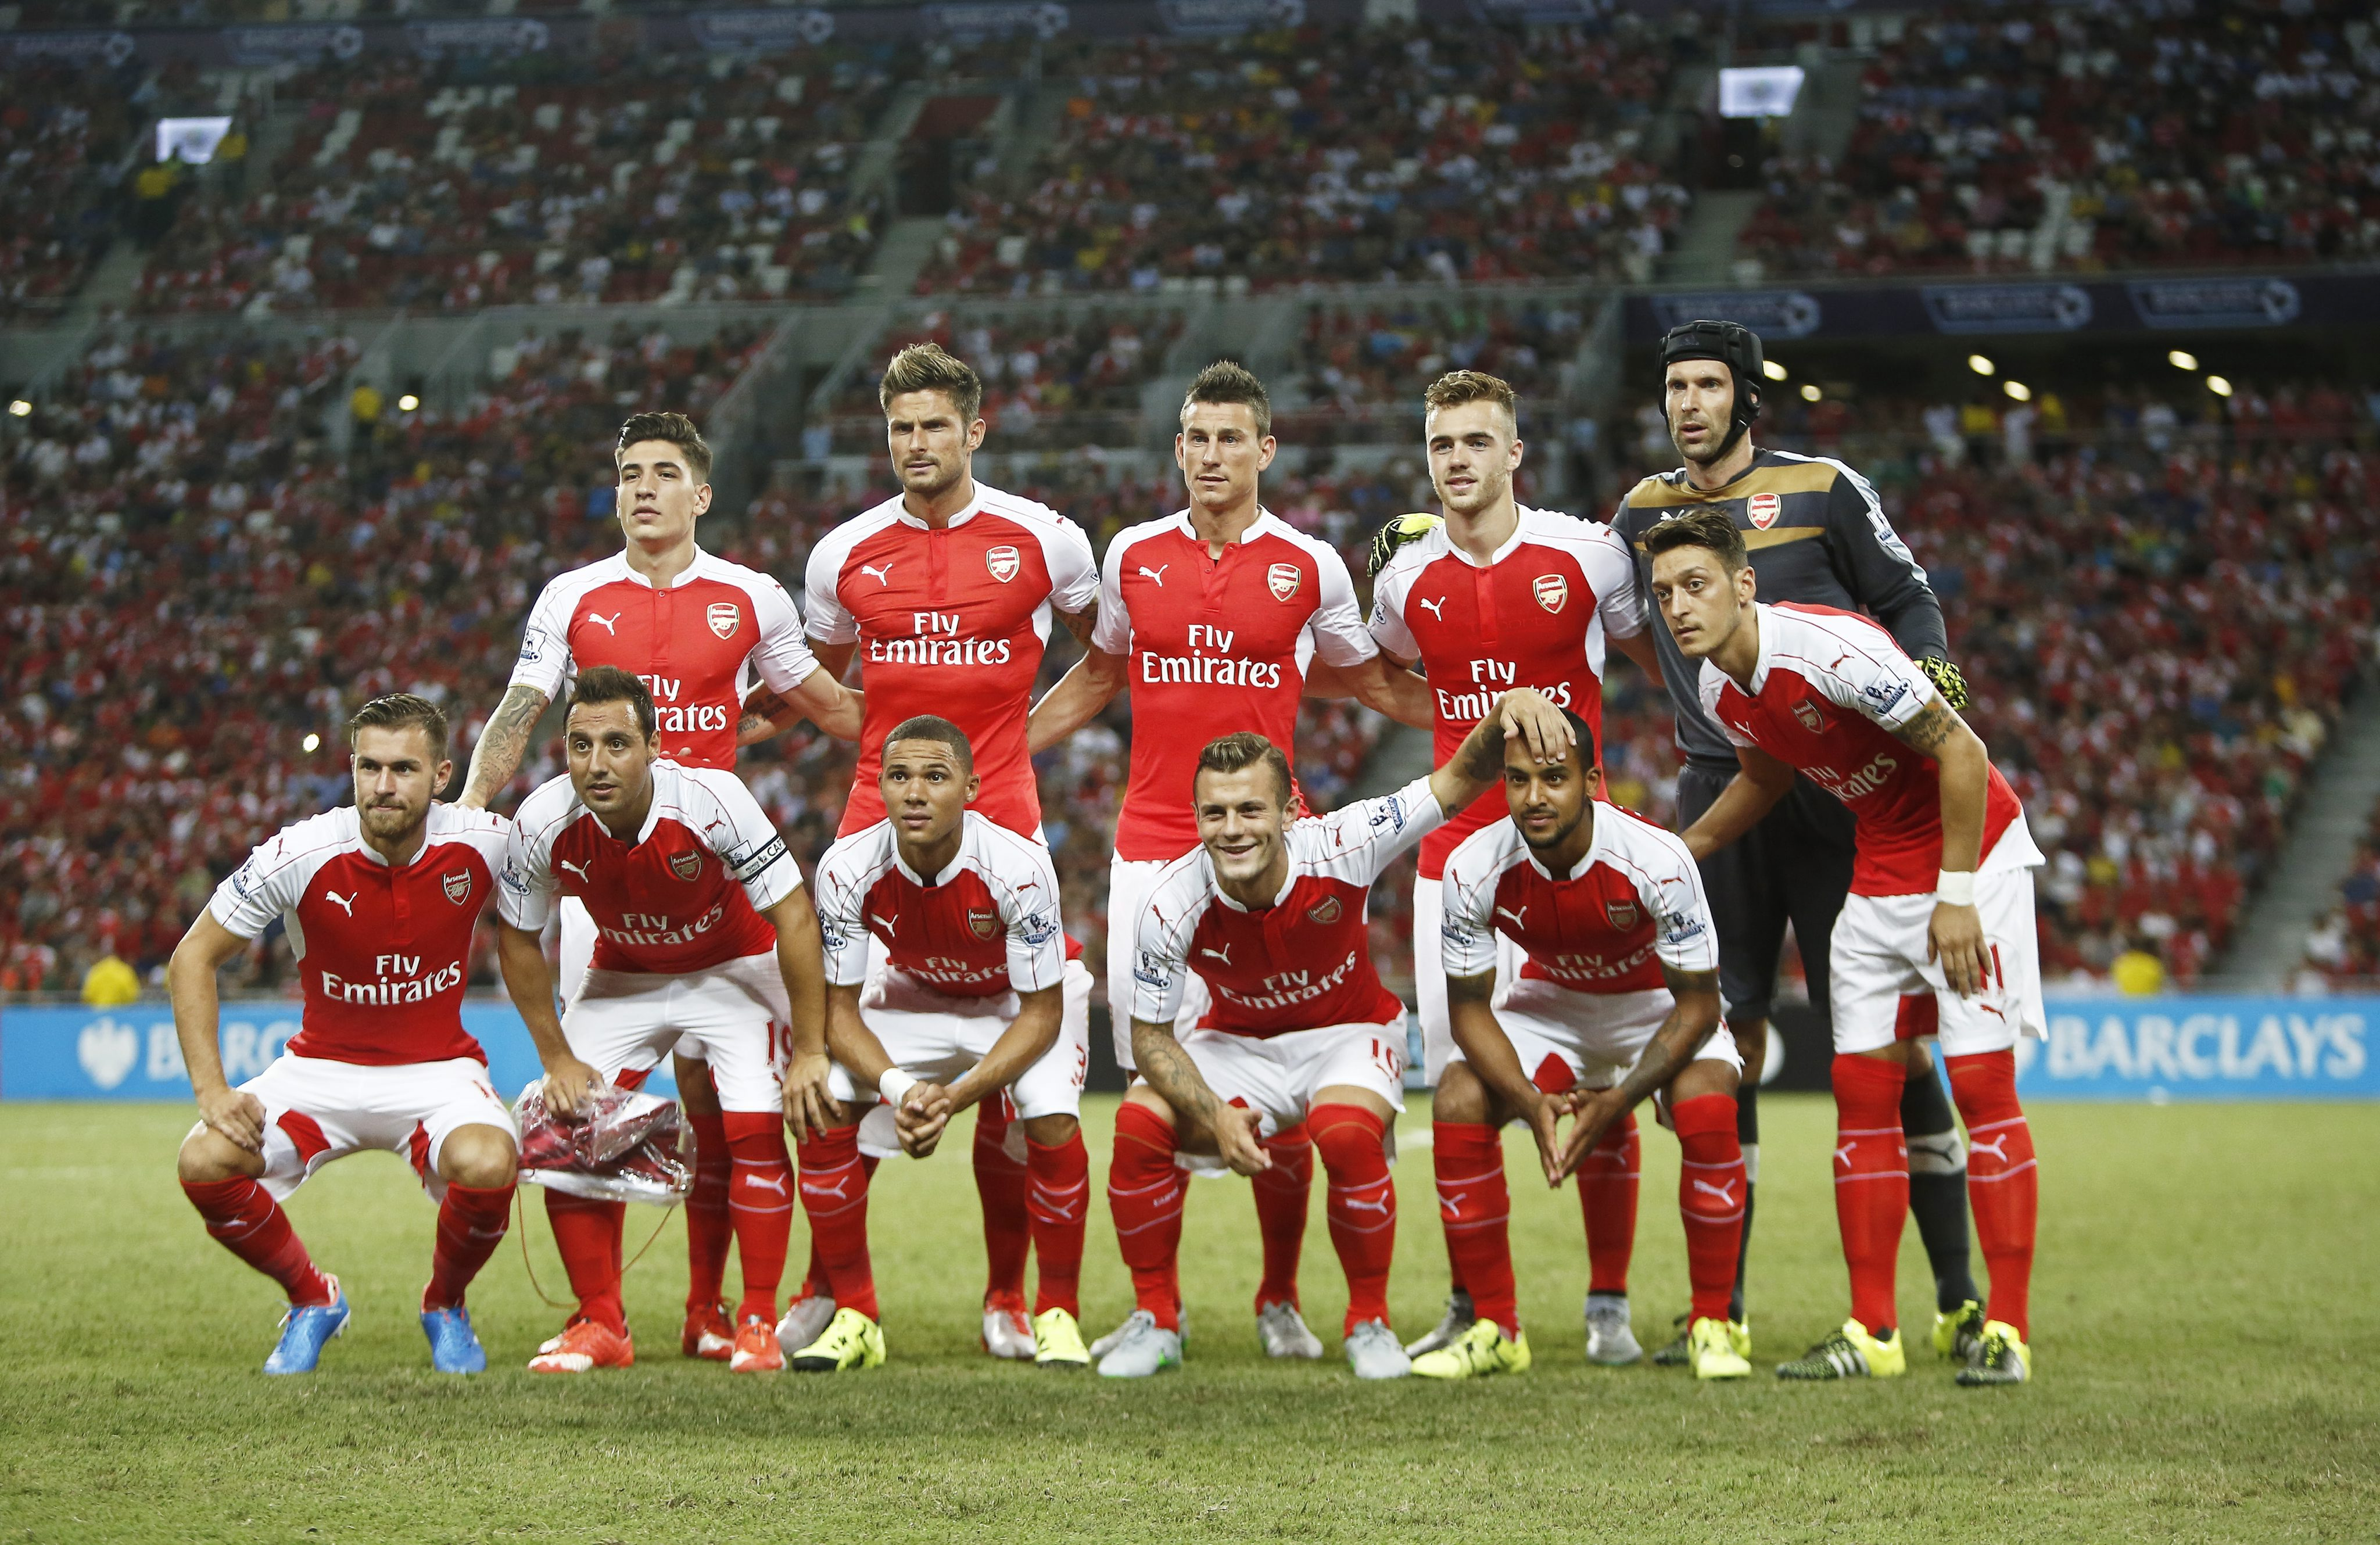 arsenal fc Welcome to the official arsenal website get all the latest news, match video, injury updates, tv information, player info, match stats, tickets, shirts and more.